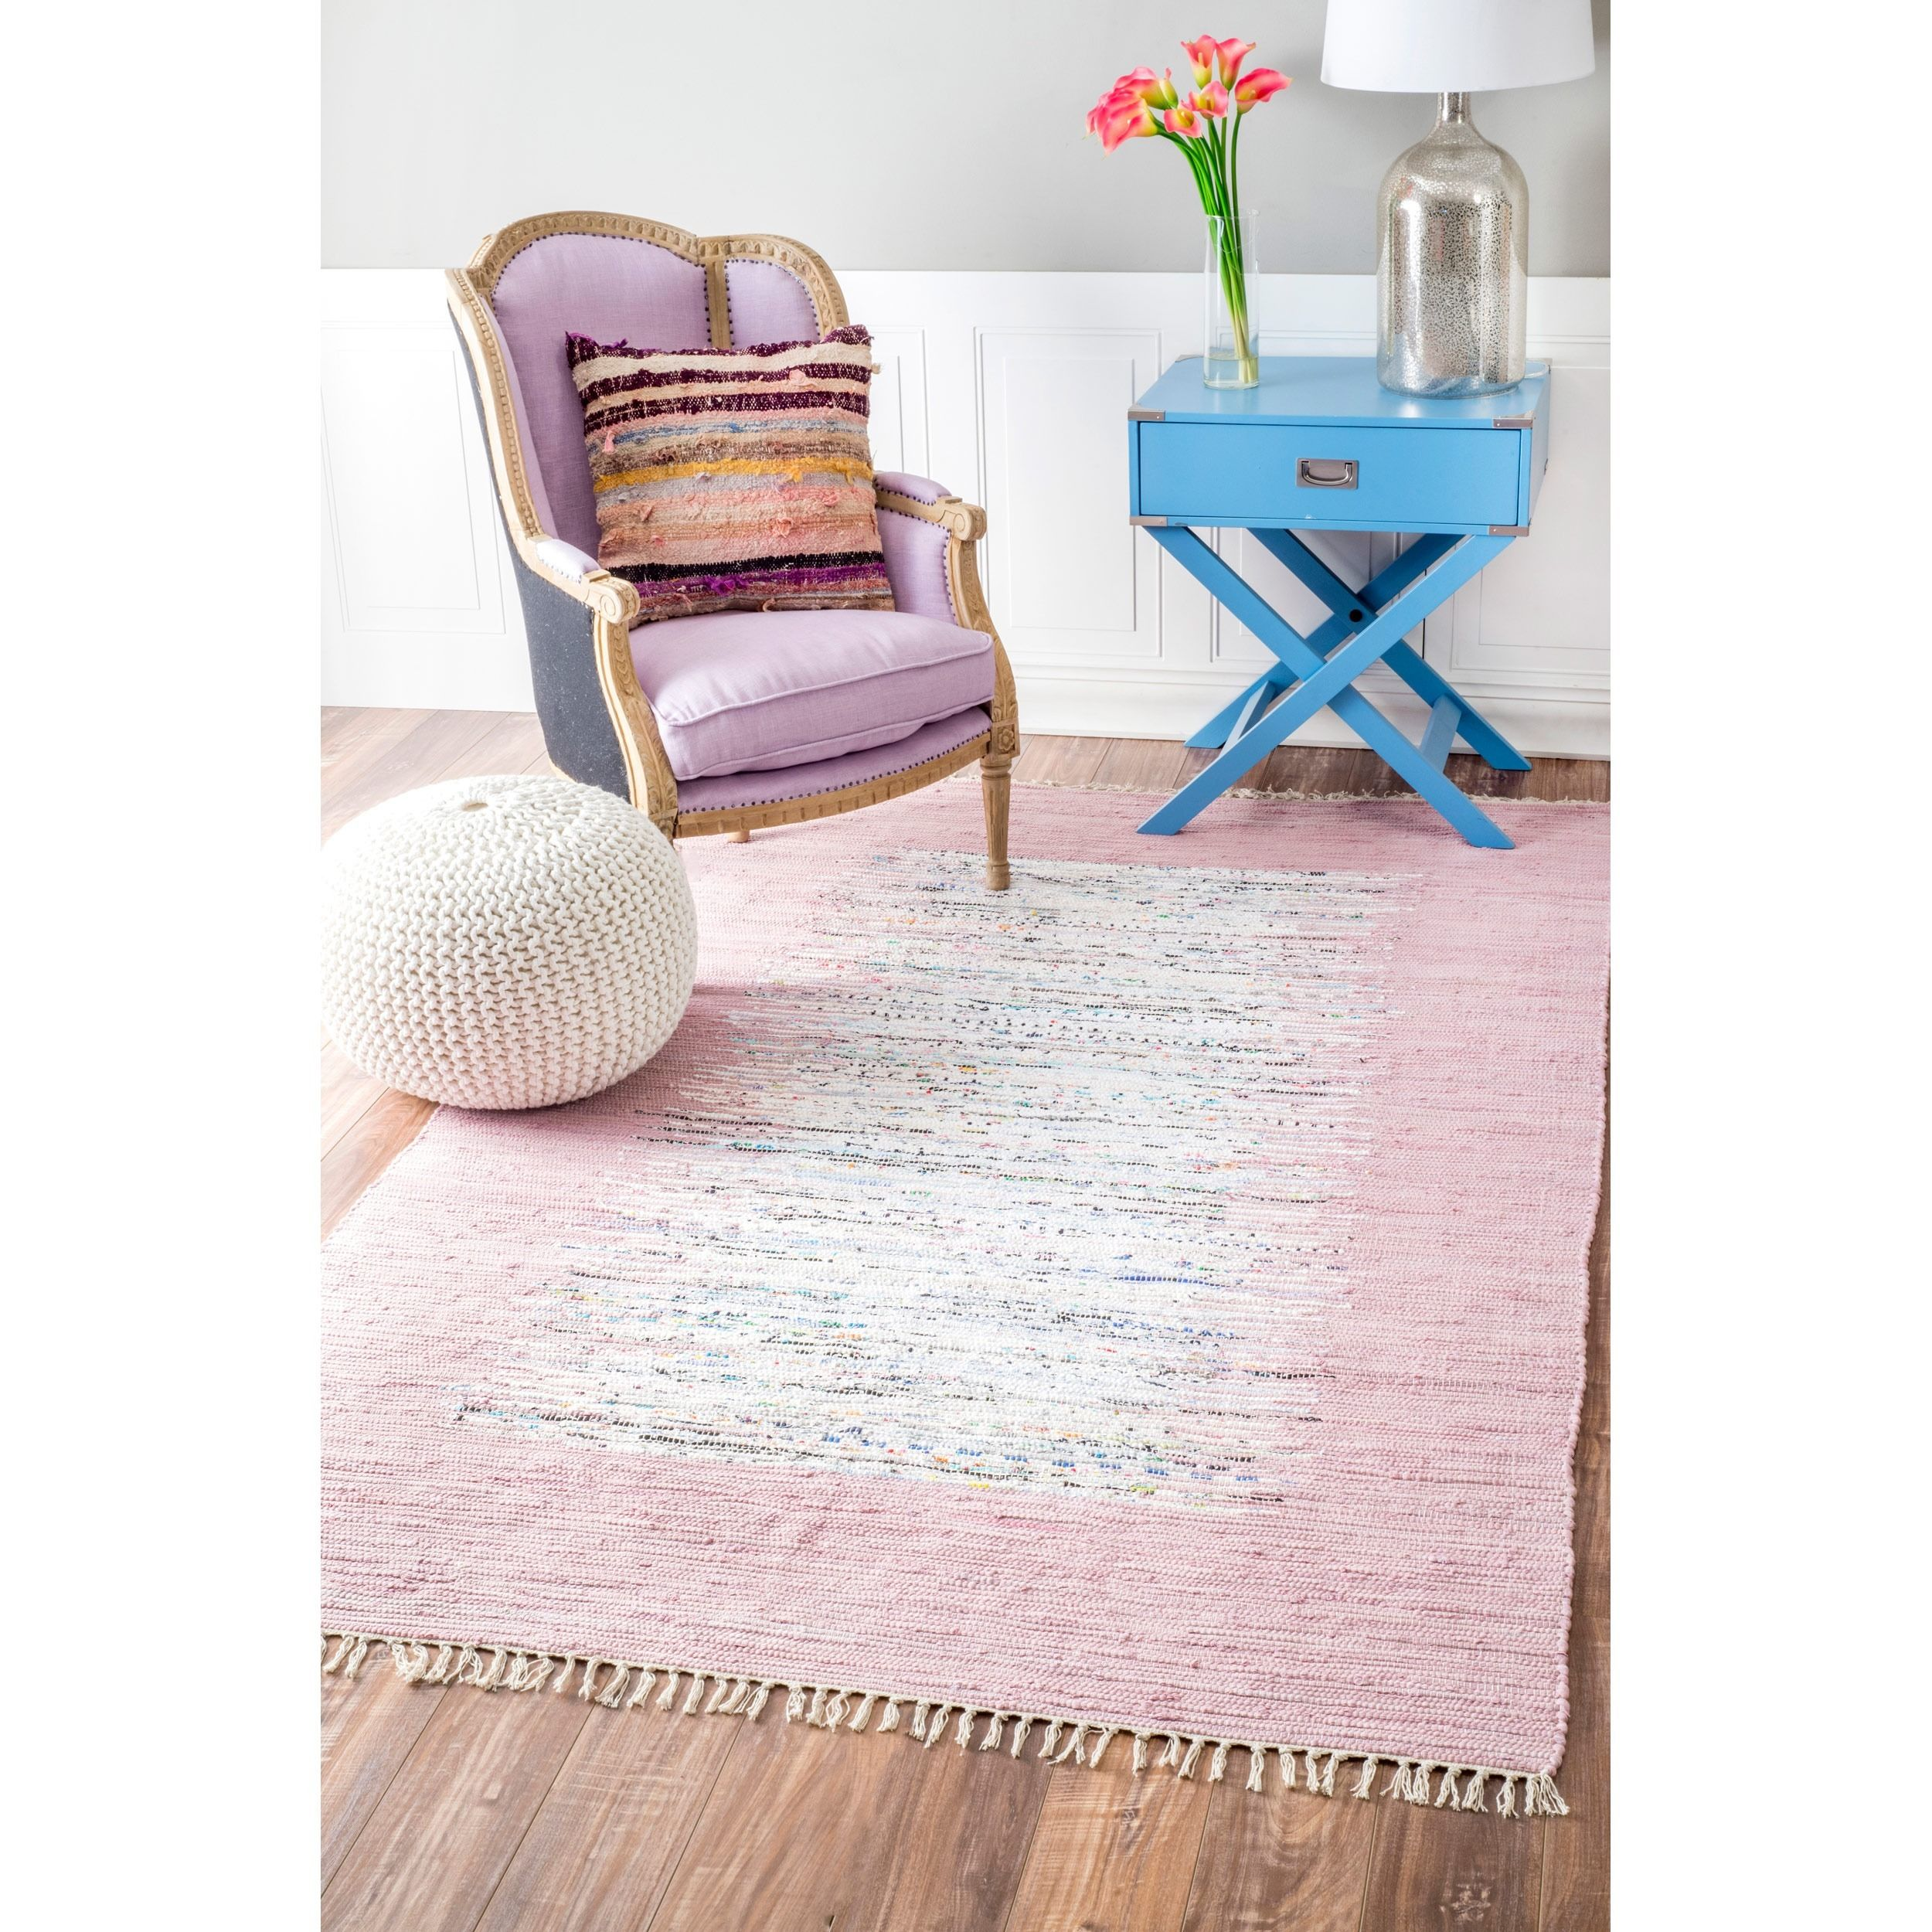 Beautiful Find A Place In Your Home For This Beautiful Lavender Kilim Flatweave Rug.  The Unique Flat Woven Design Has No Pile, And Is A Highly Sought After Look. Nice Look